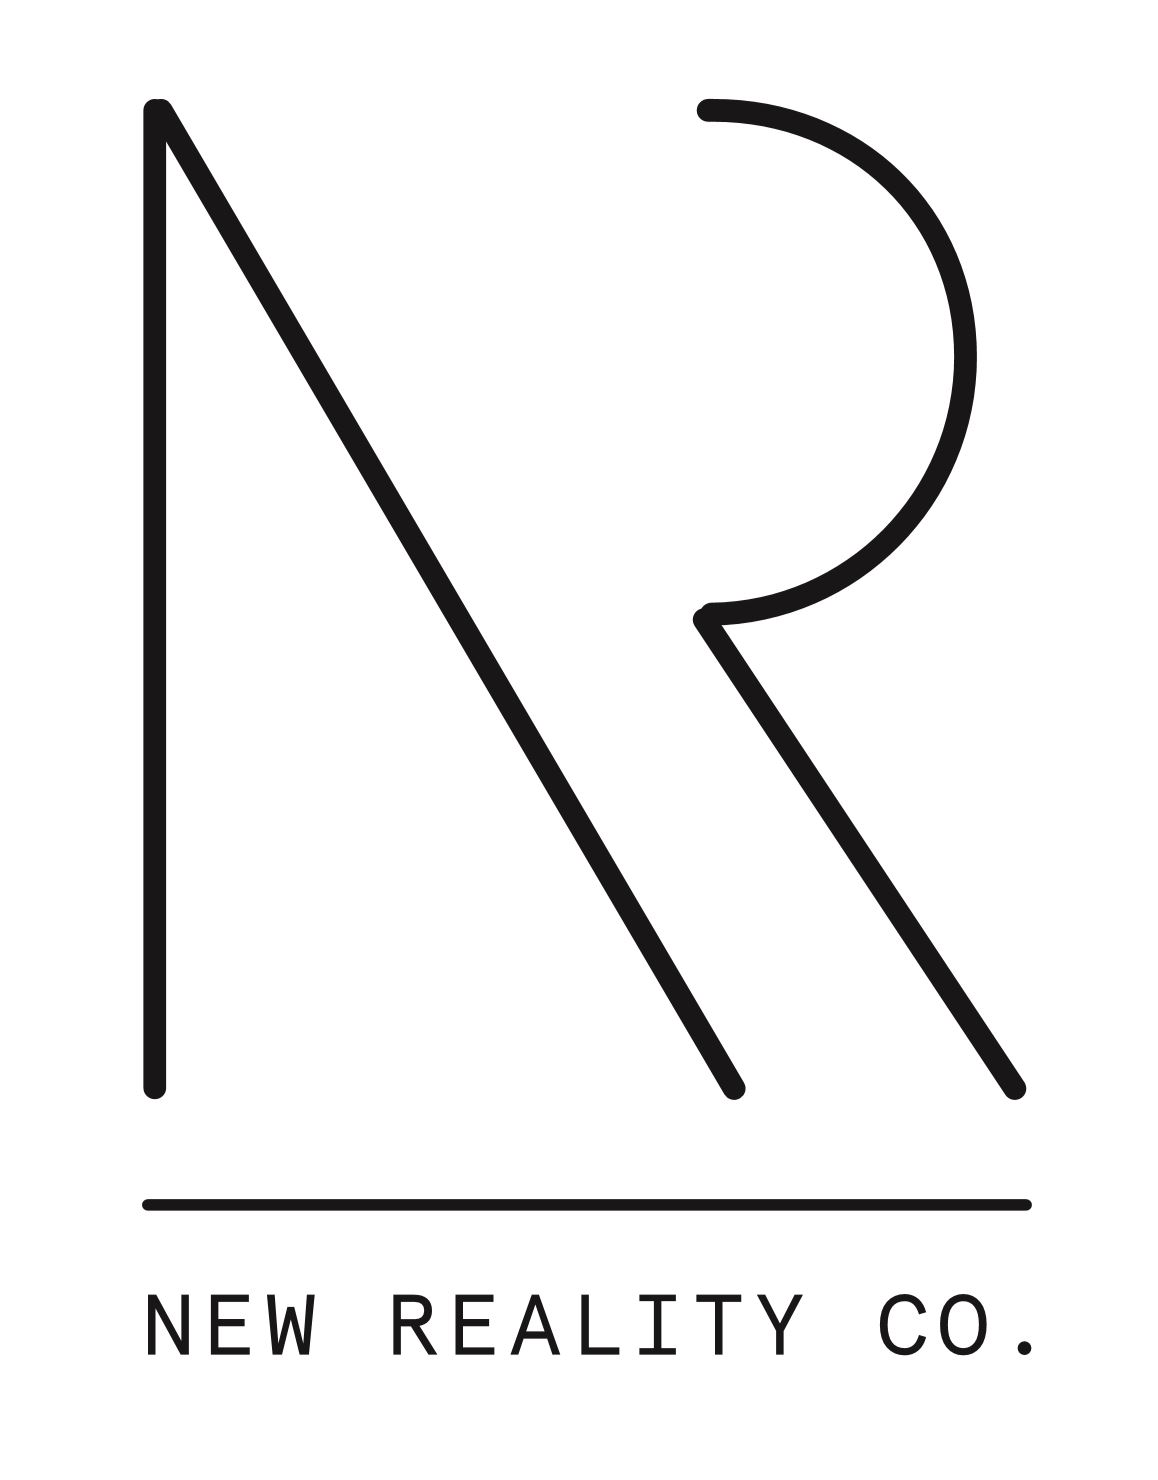 New Reality Co.